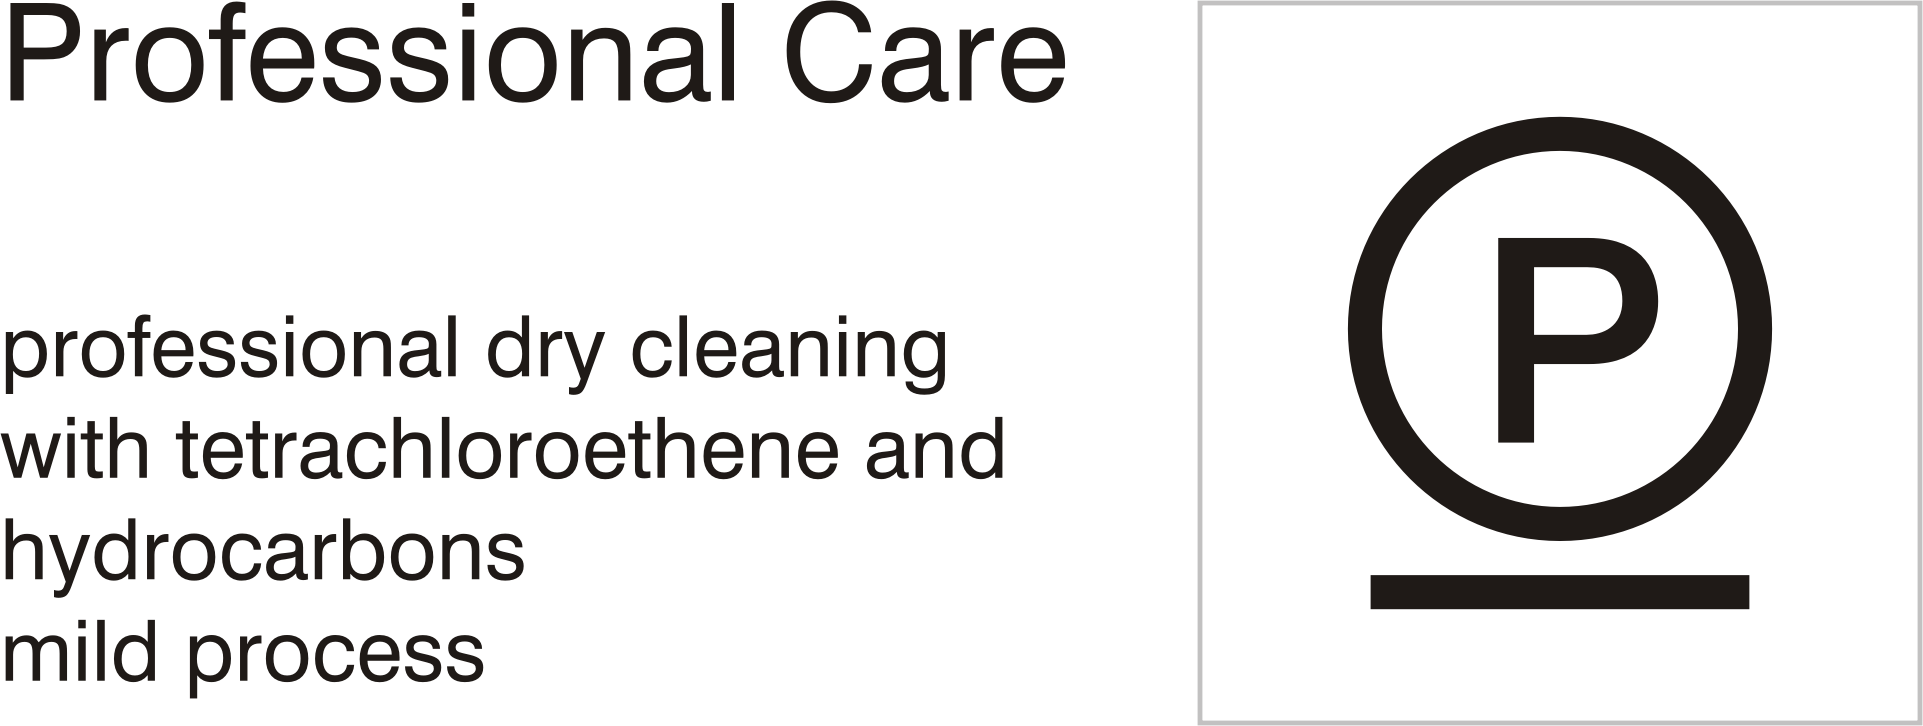 Care symbols, professional care: dry clean with tetrachloroethene and hydrocarbons - mild process by Vanja